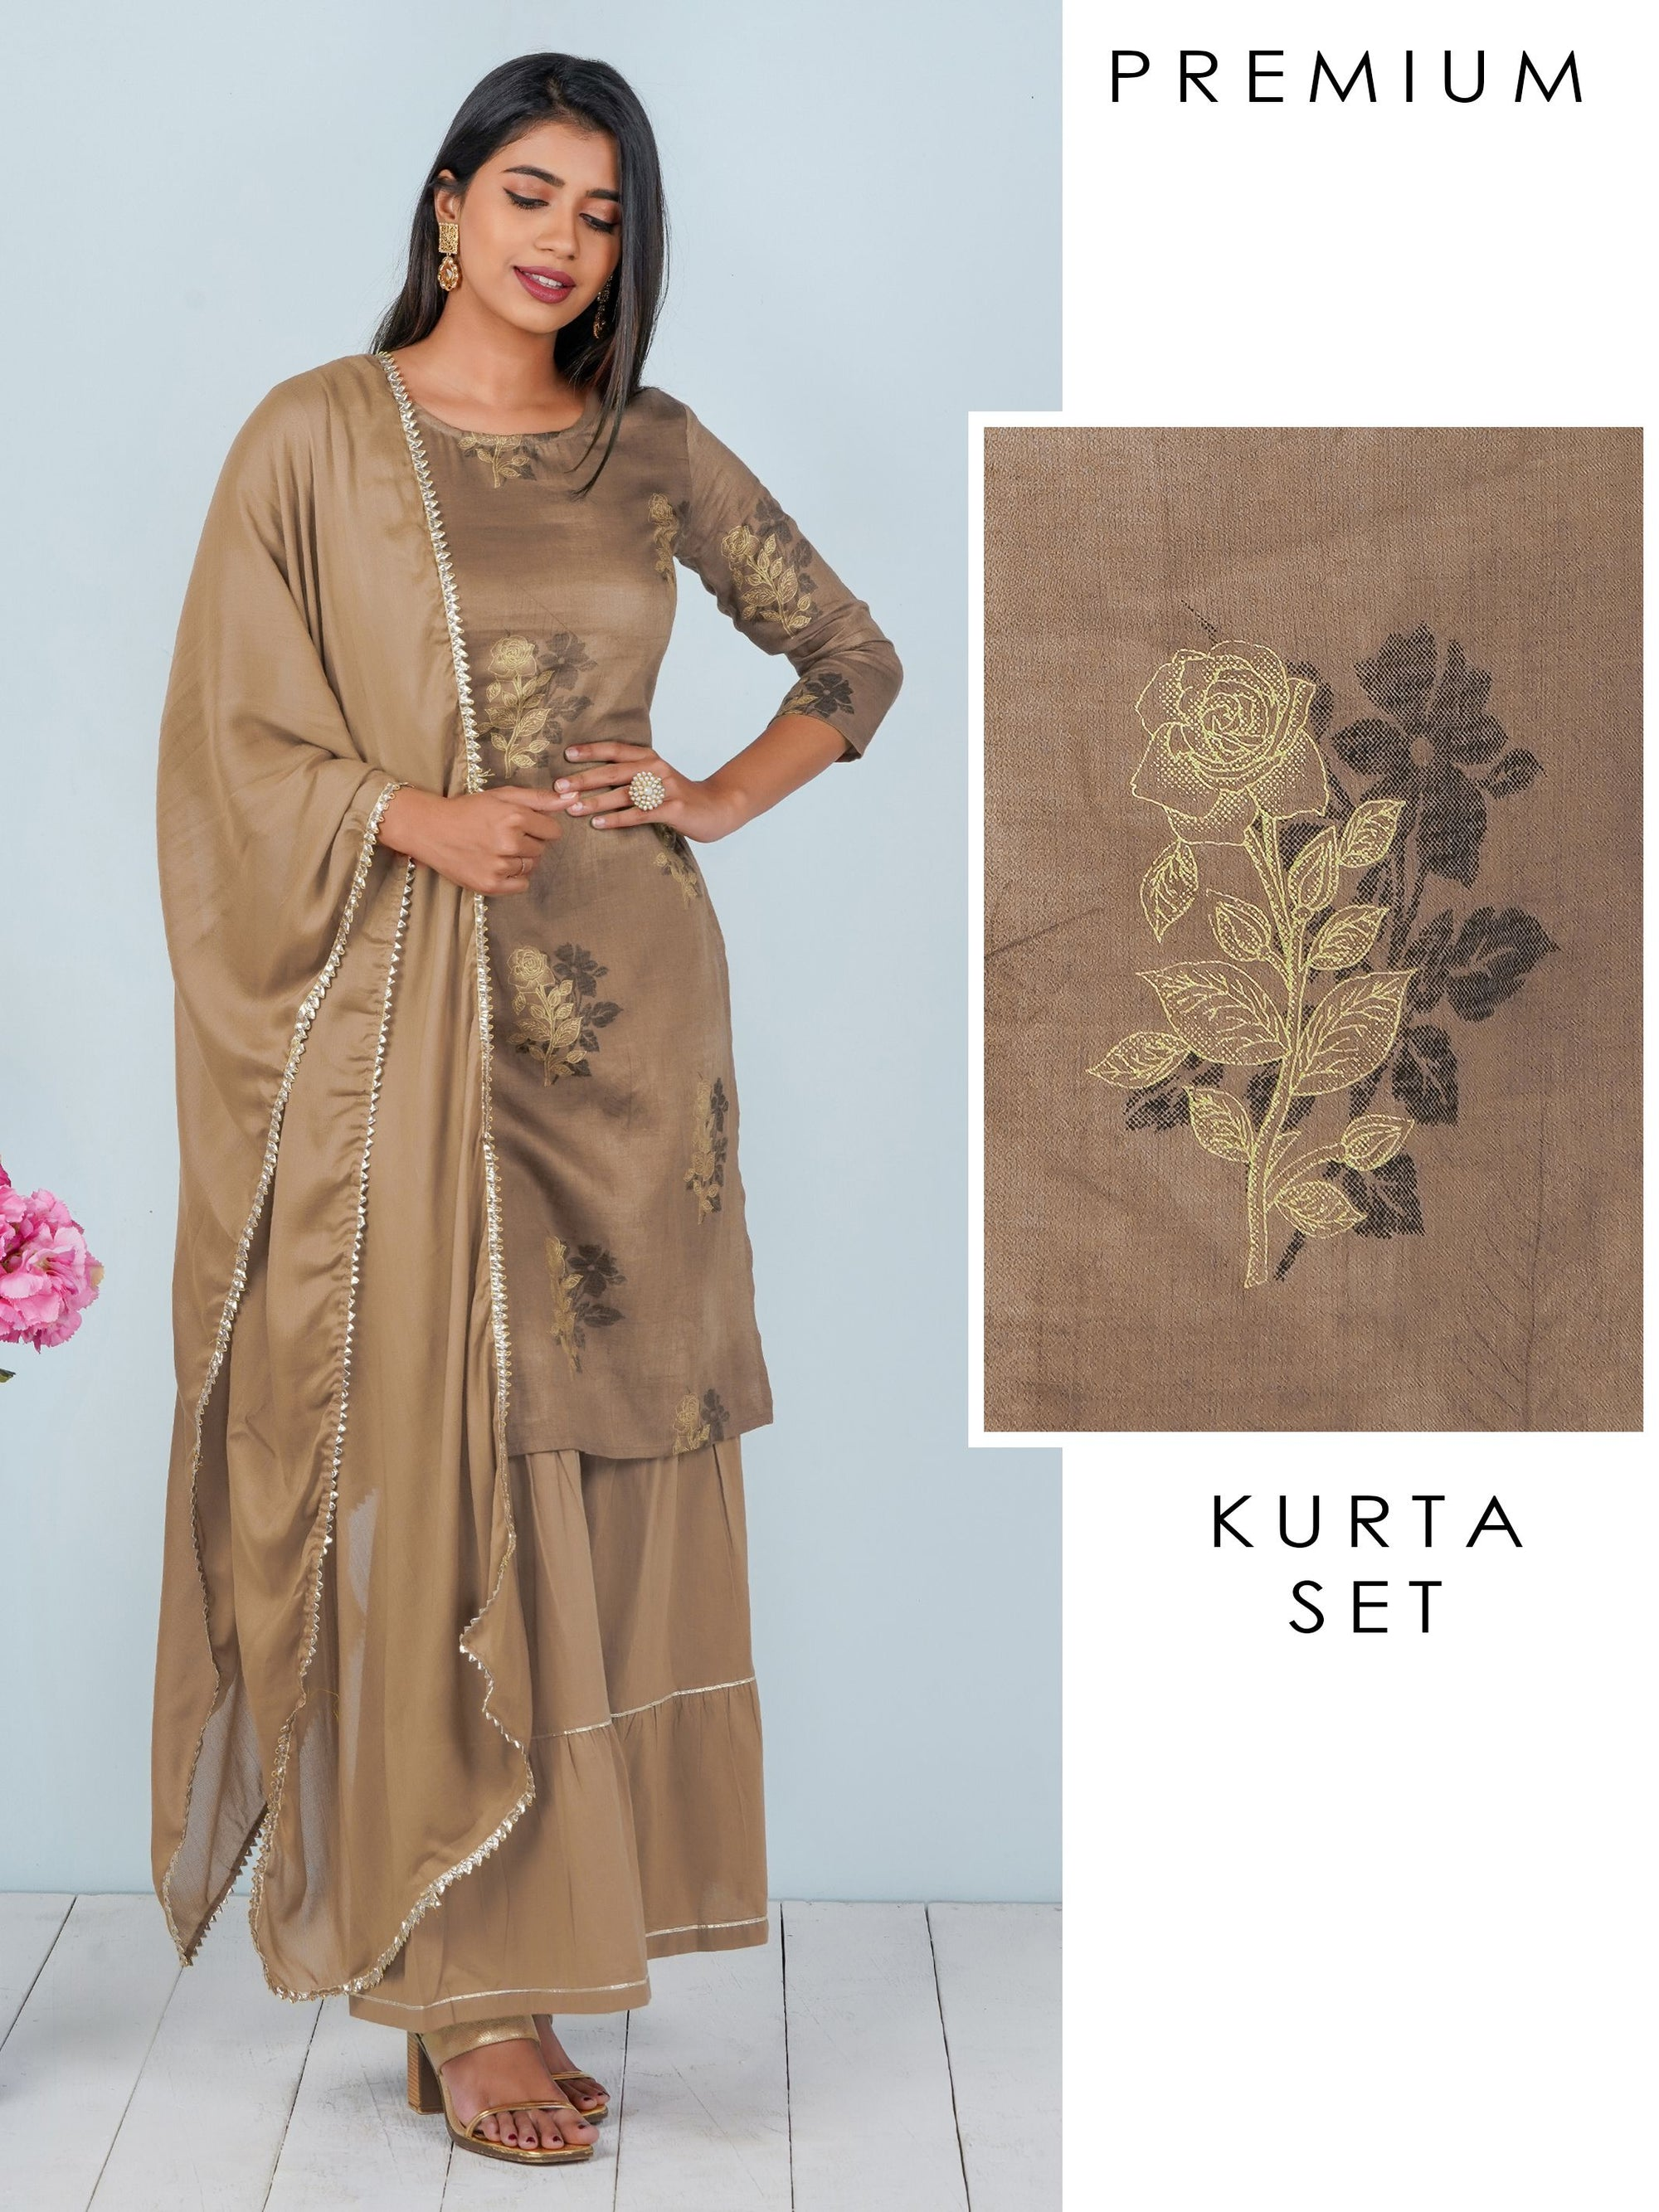 Monotone Floral Printed Kurti, Gota Sharara & Dupatta Set - Rusty Brown